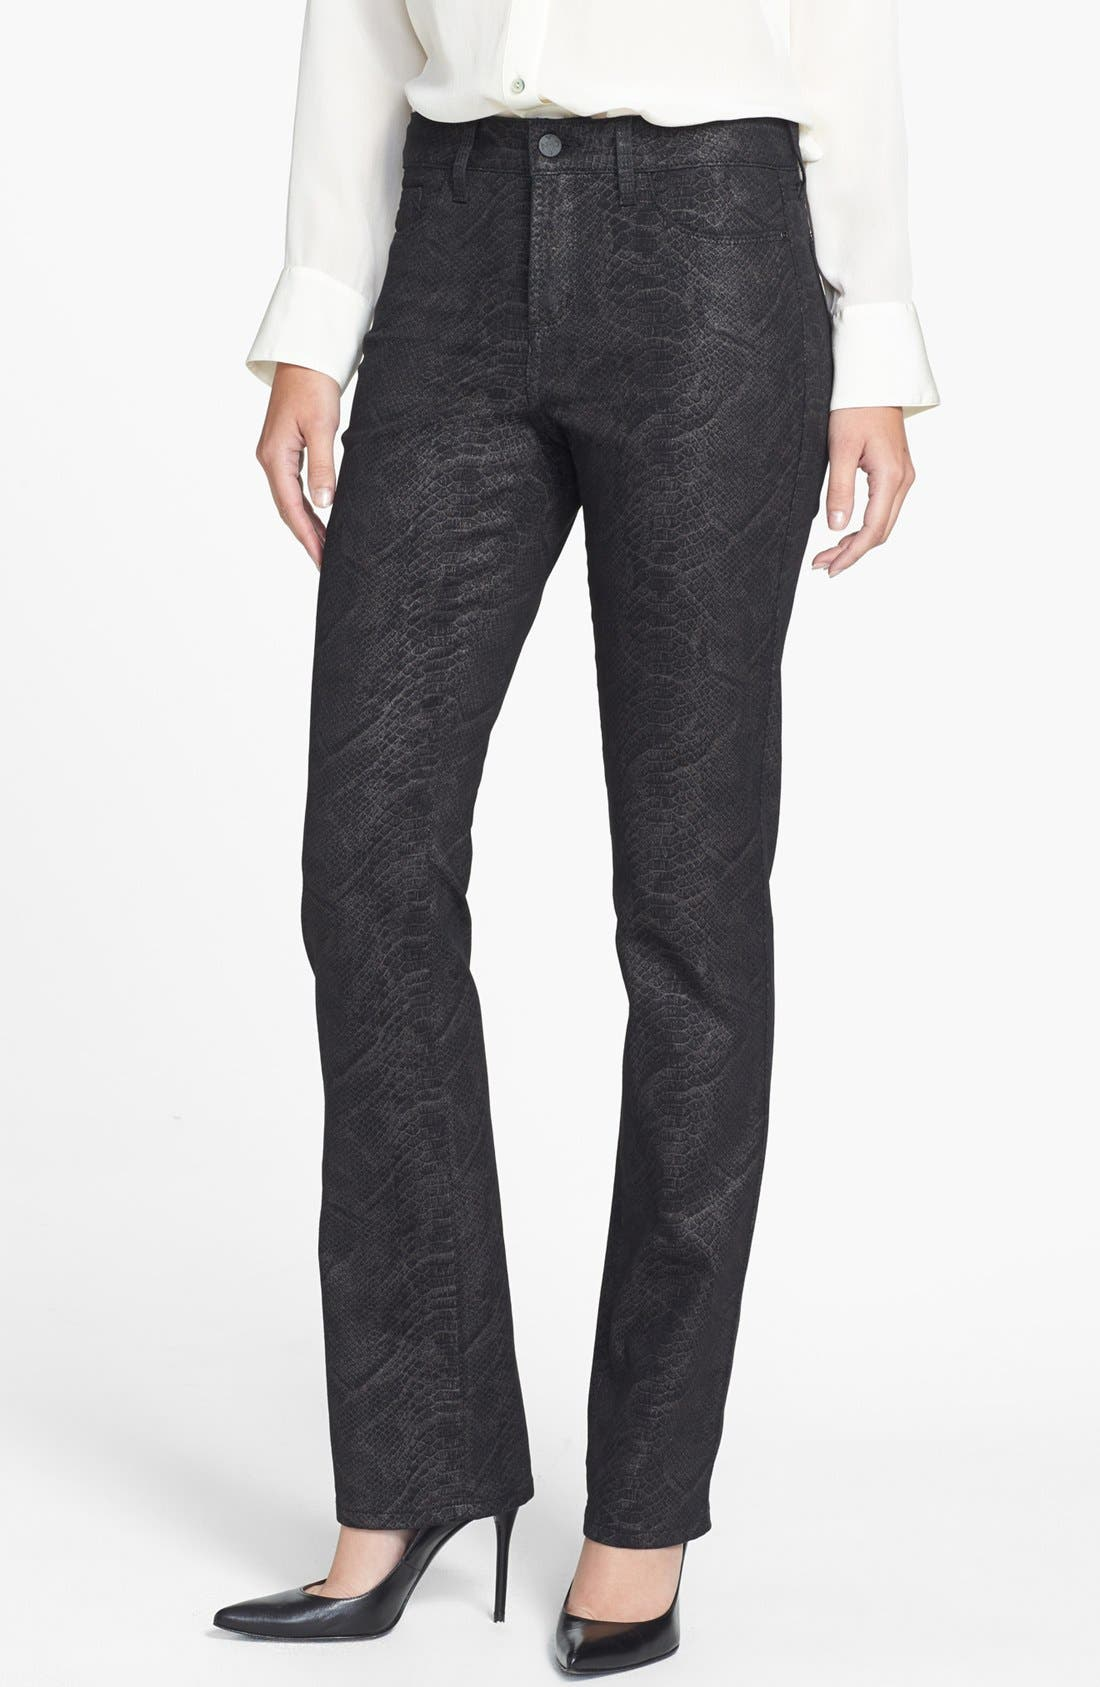 Alternate Image 1 Selected - NYDJ 'Marilyn' Print Stretch Straight Leg Jeans (Metallic Snake)